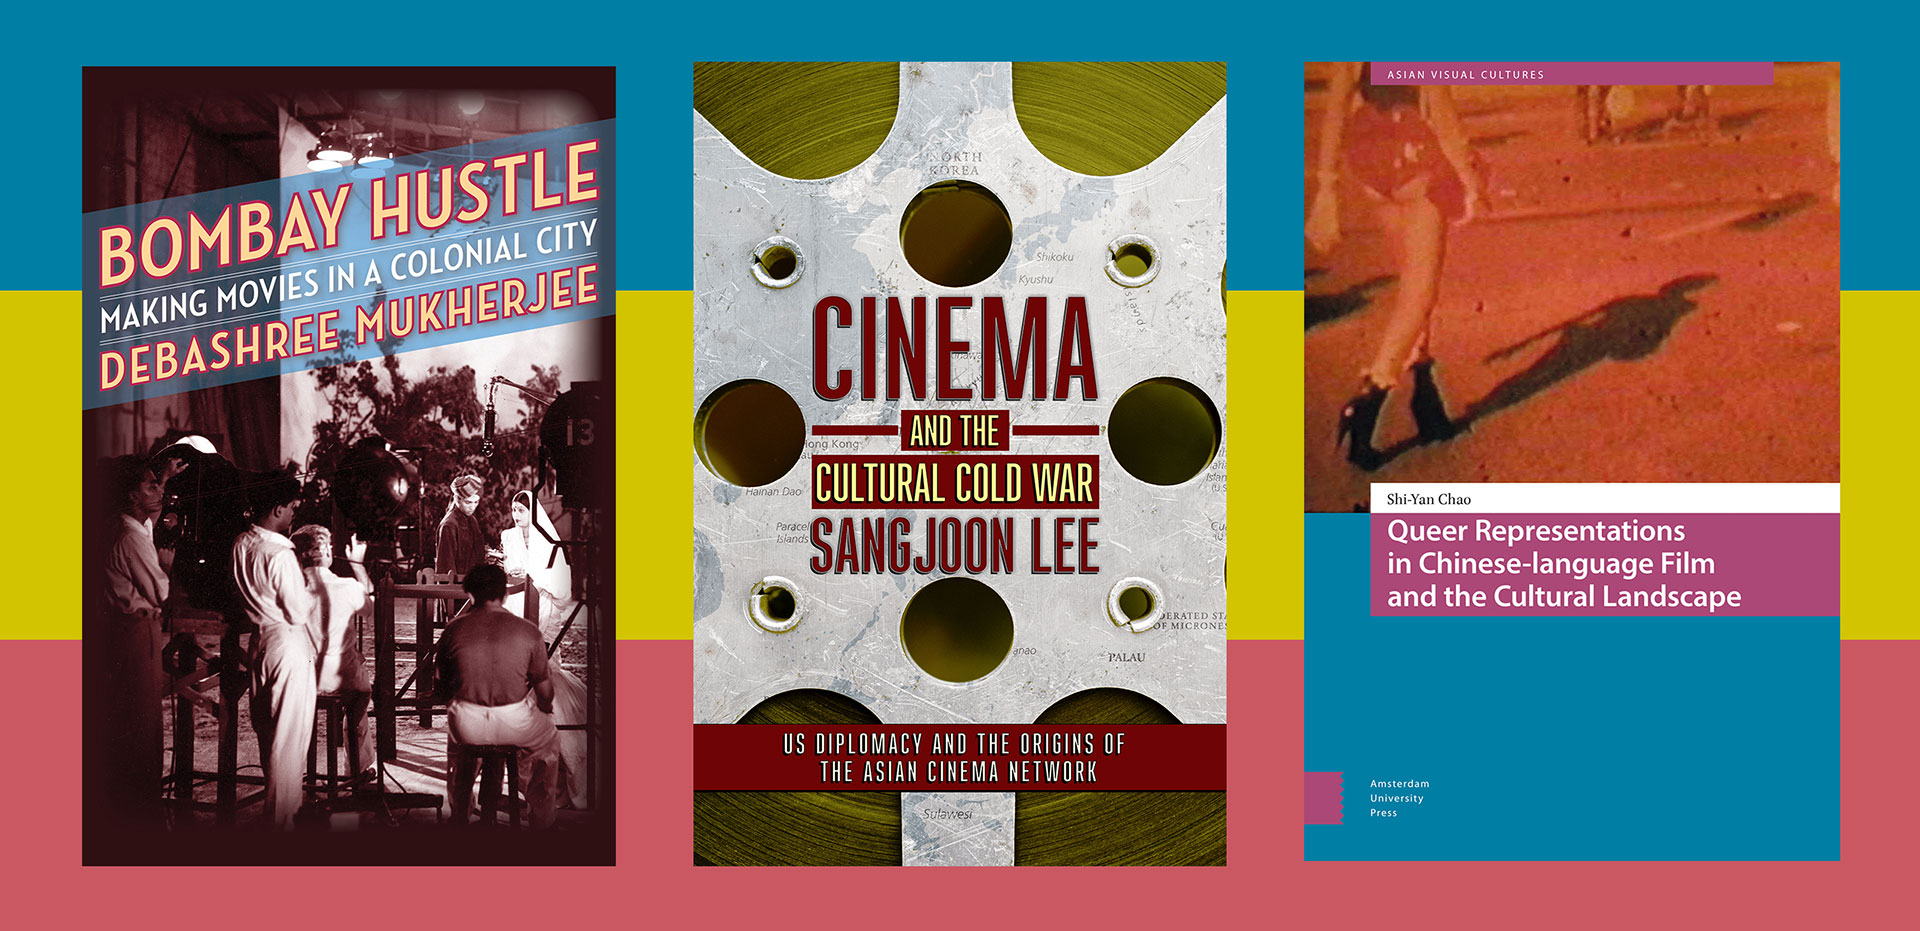 Book covers for featured lecturers: Bombay Hustle, Cinema and the Cultural Cold War, and Queer Representations in Chinese-language Film and the Cultural Landscape